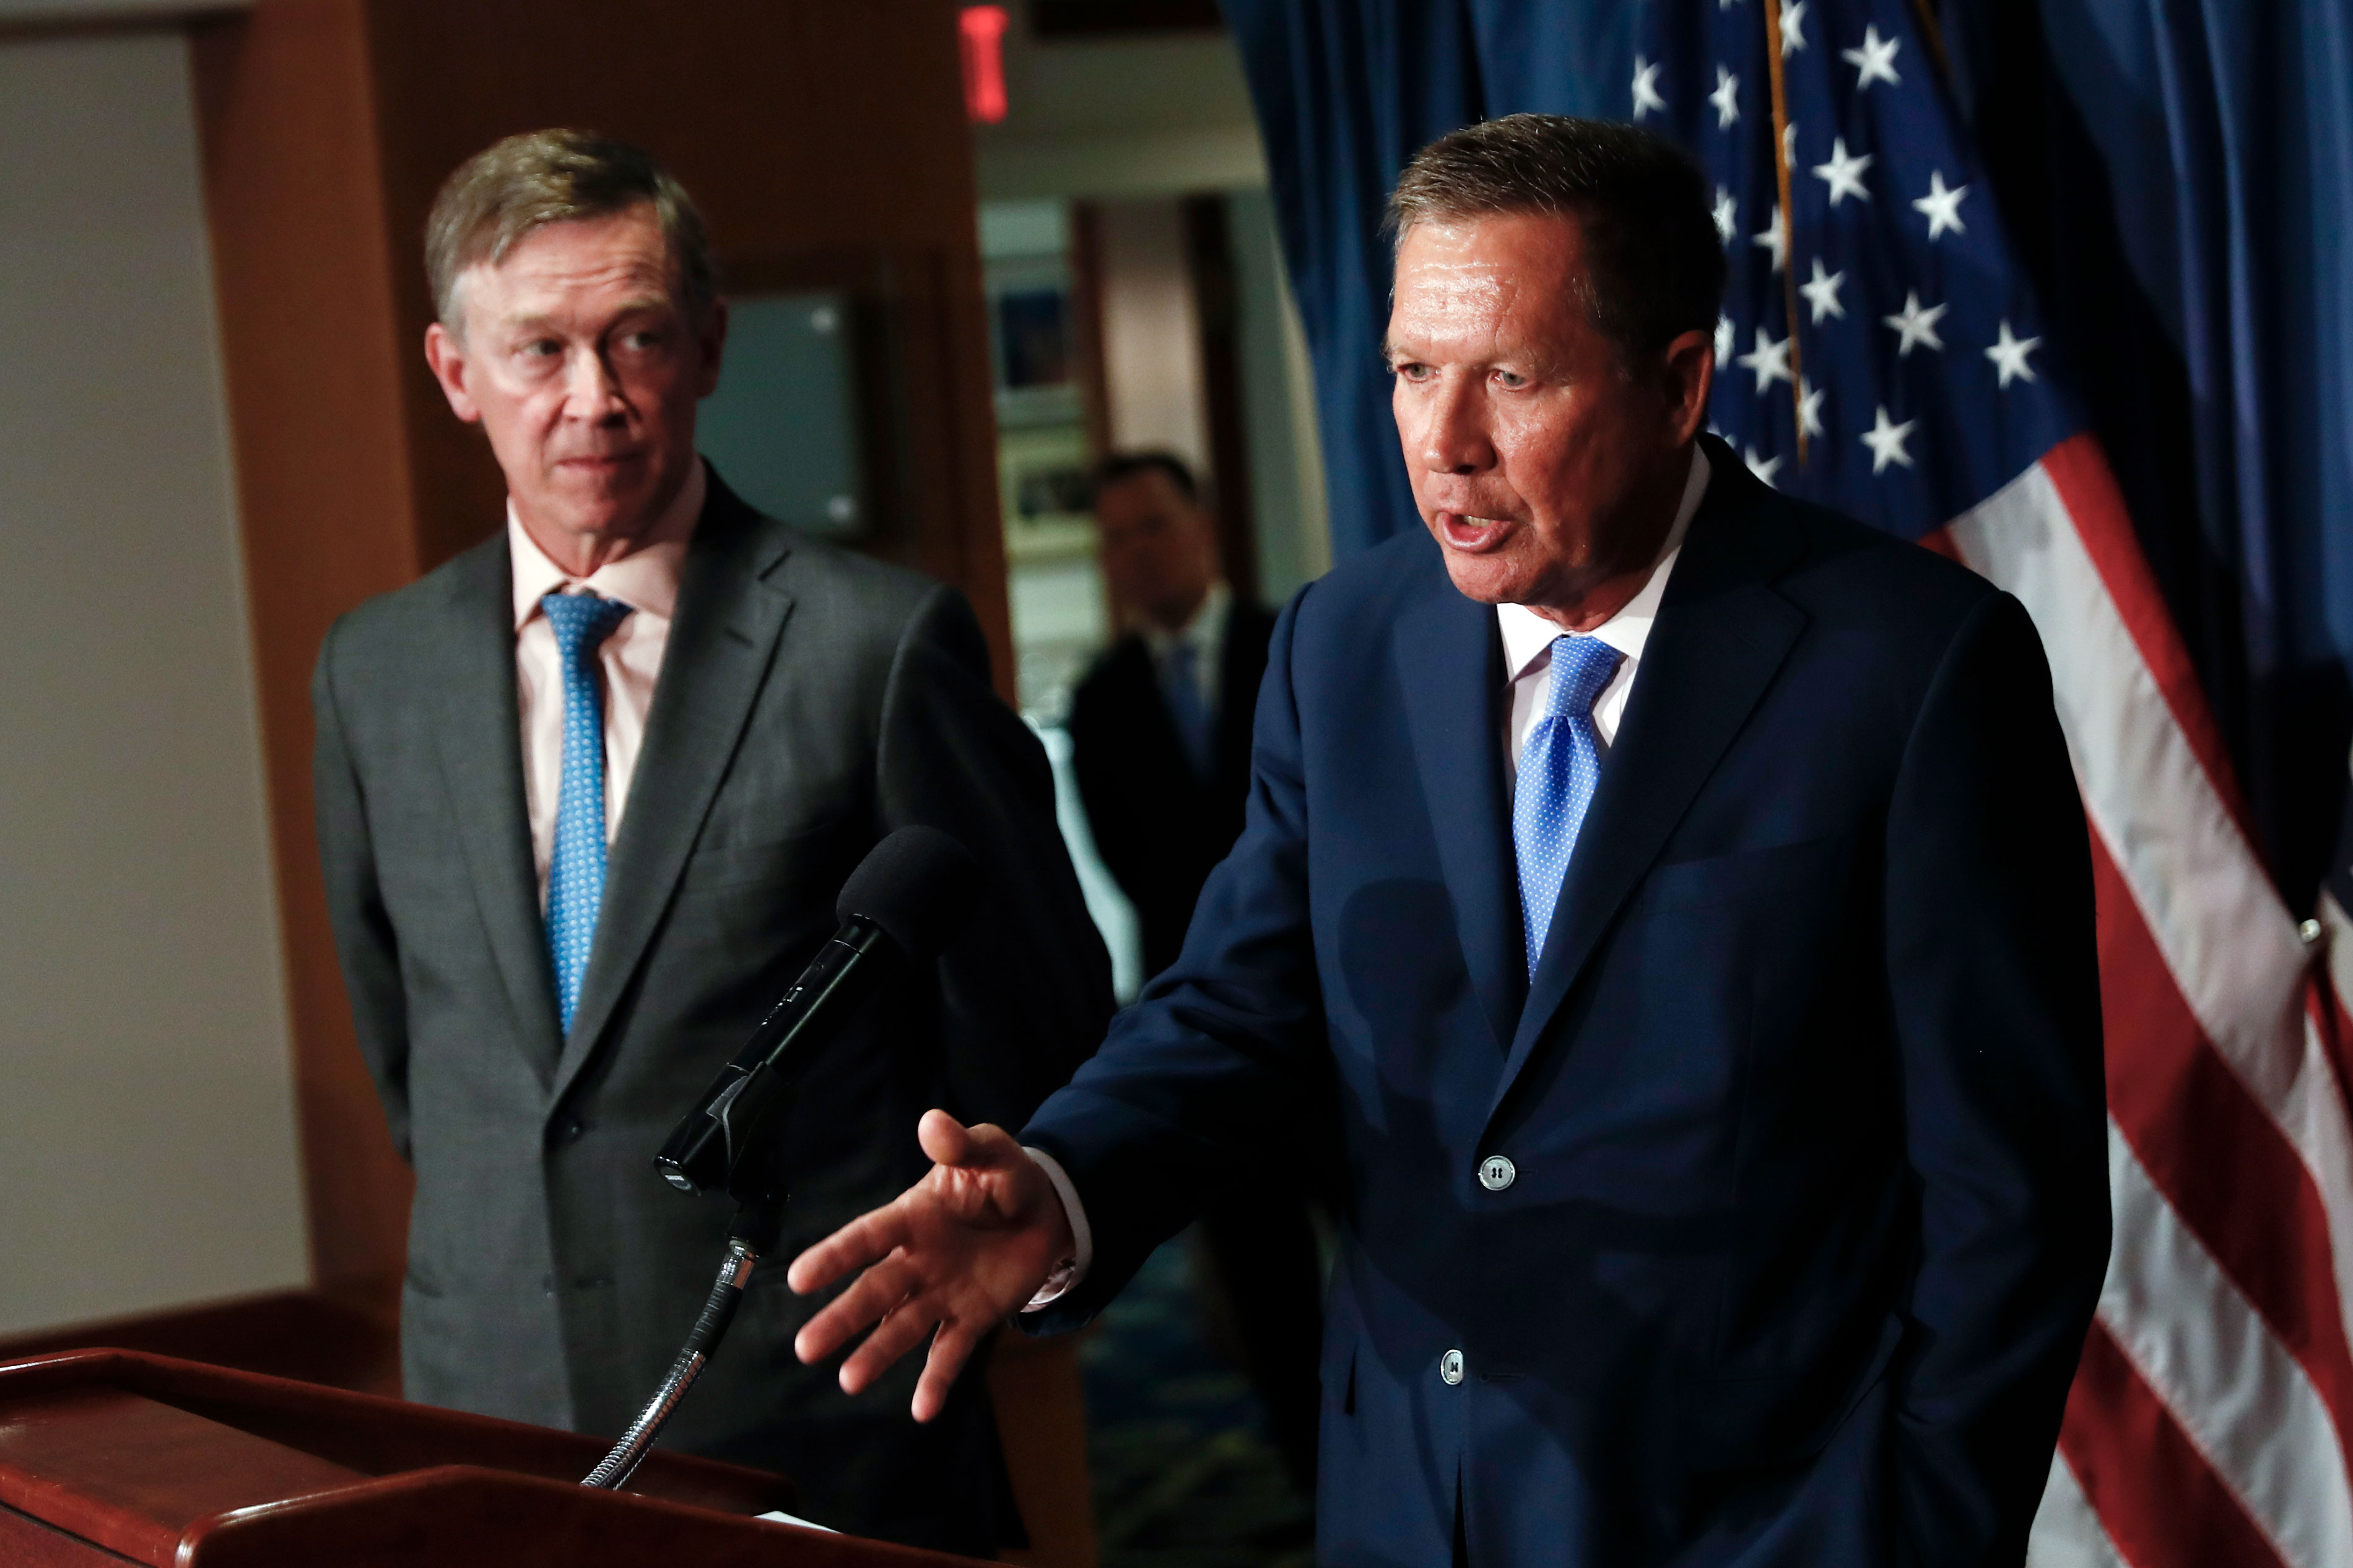 <p>Ohio Gov. John Kasich, right, joined by Colorado Gov. John Hickenlooper, speaksabout Republican legislation overhauling the Obama health care lawduring a news conference at the National Press Club in Washington, D.C., June 27, 2017.</p>